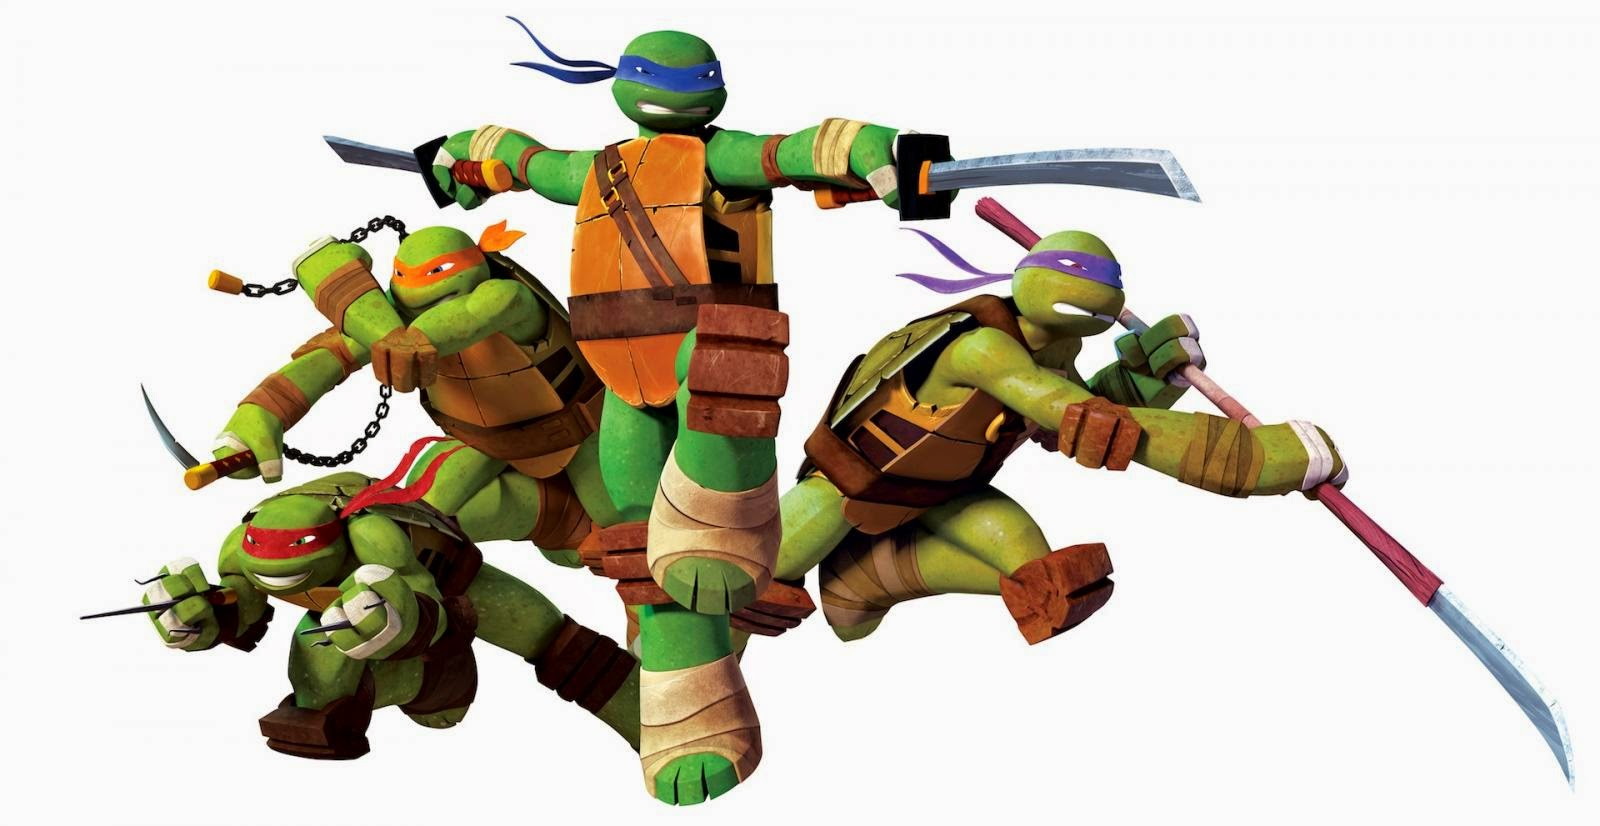 ninja turtles nickelodeon